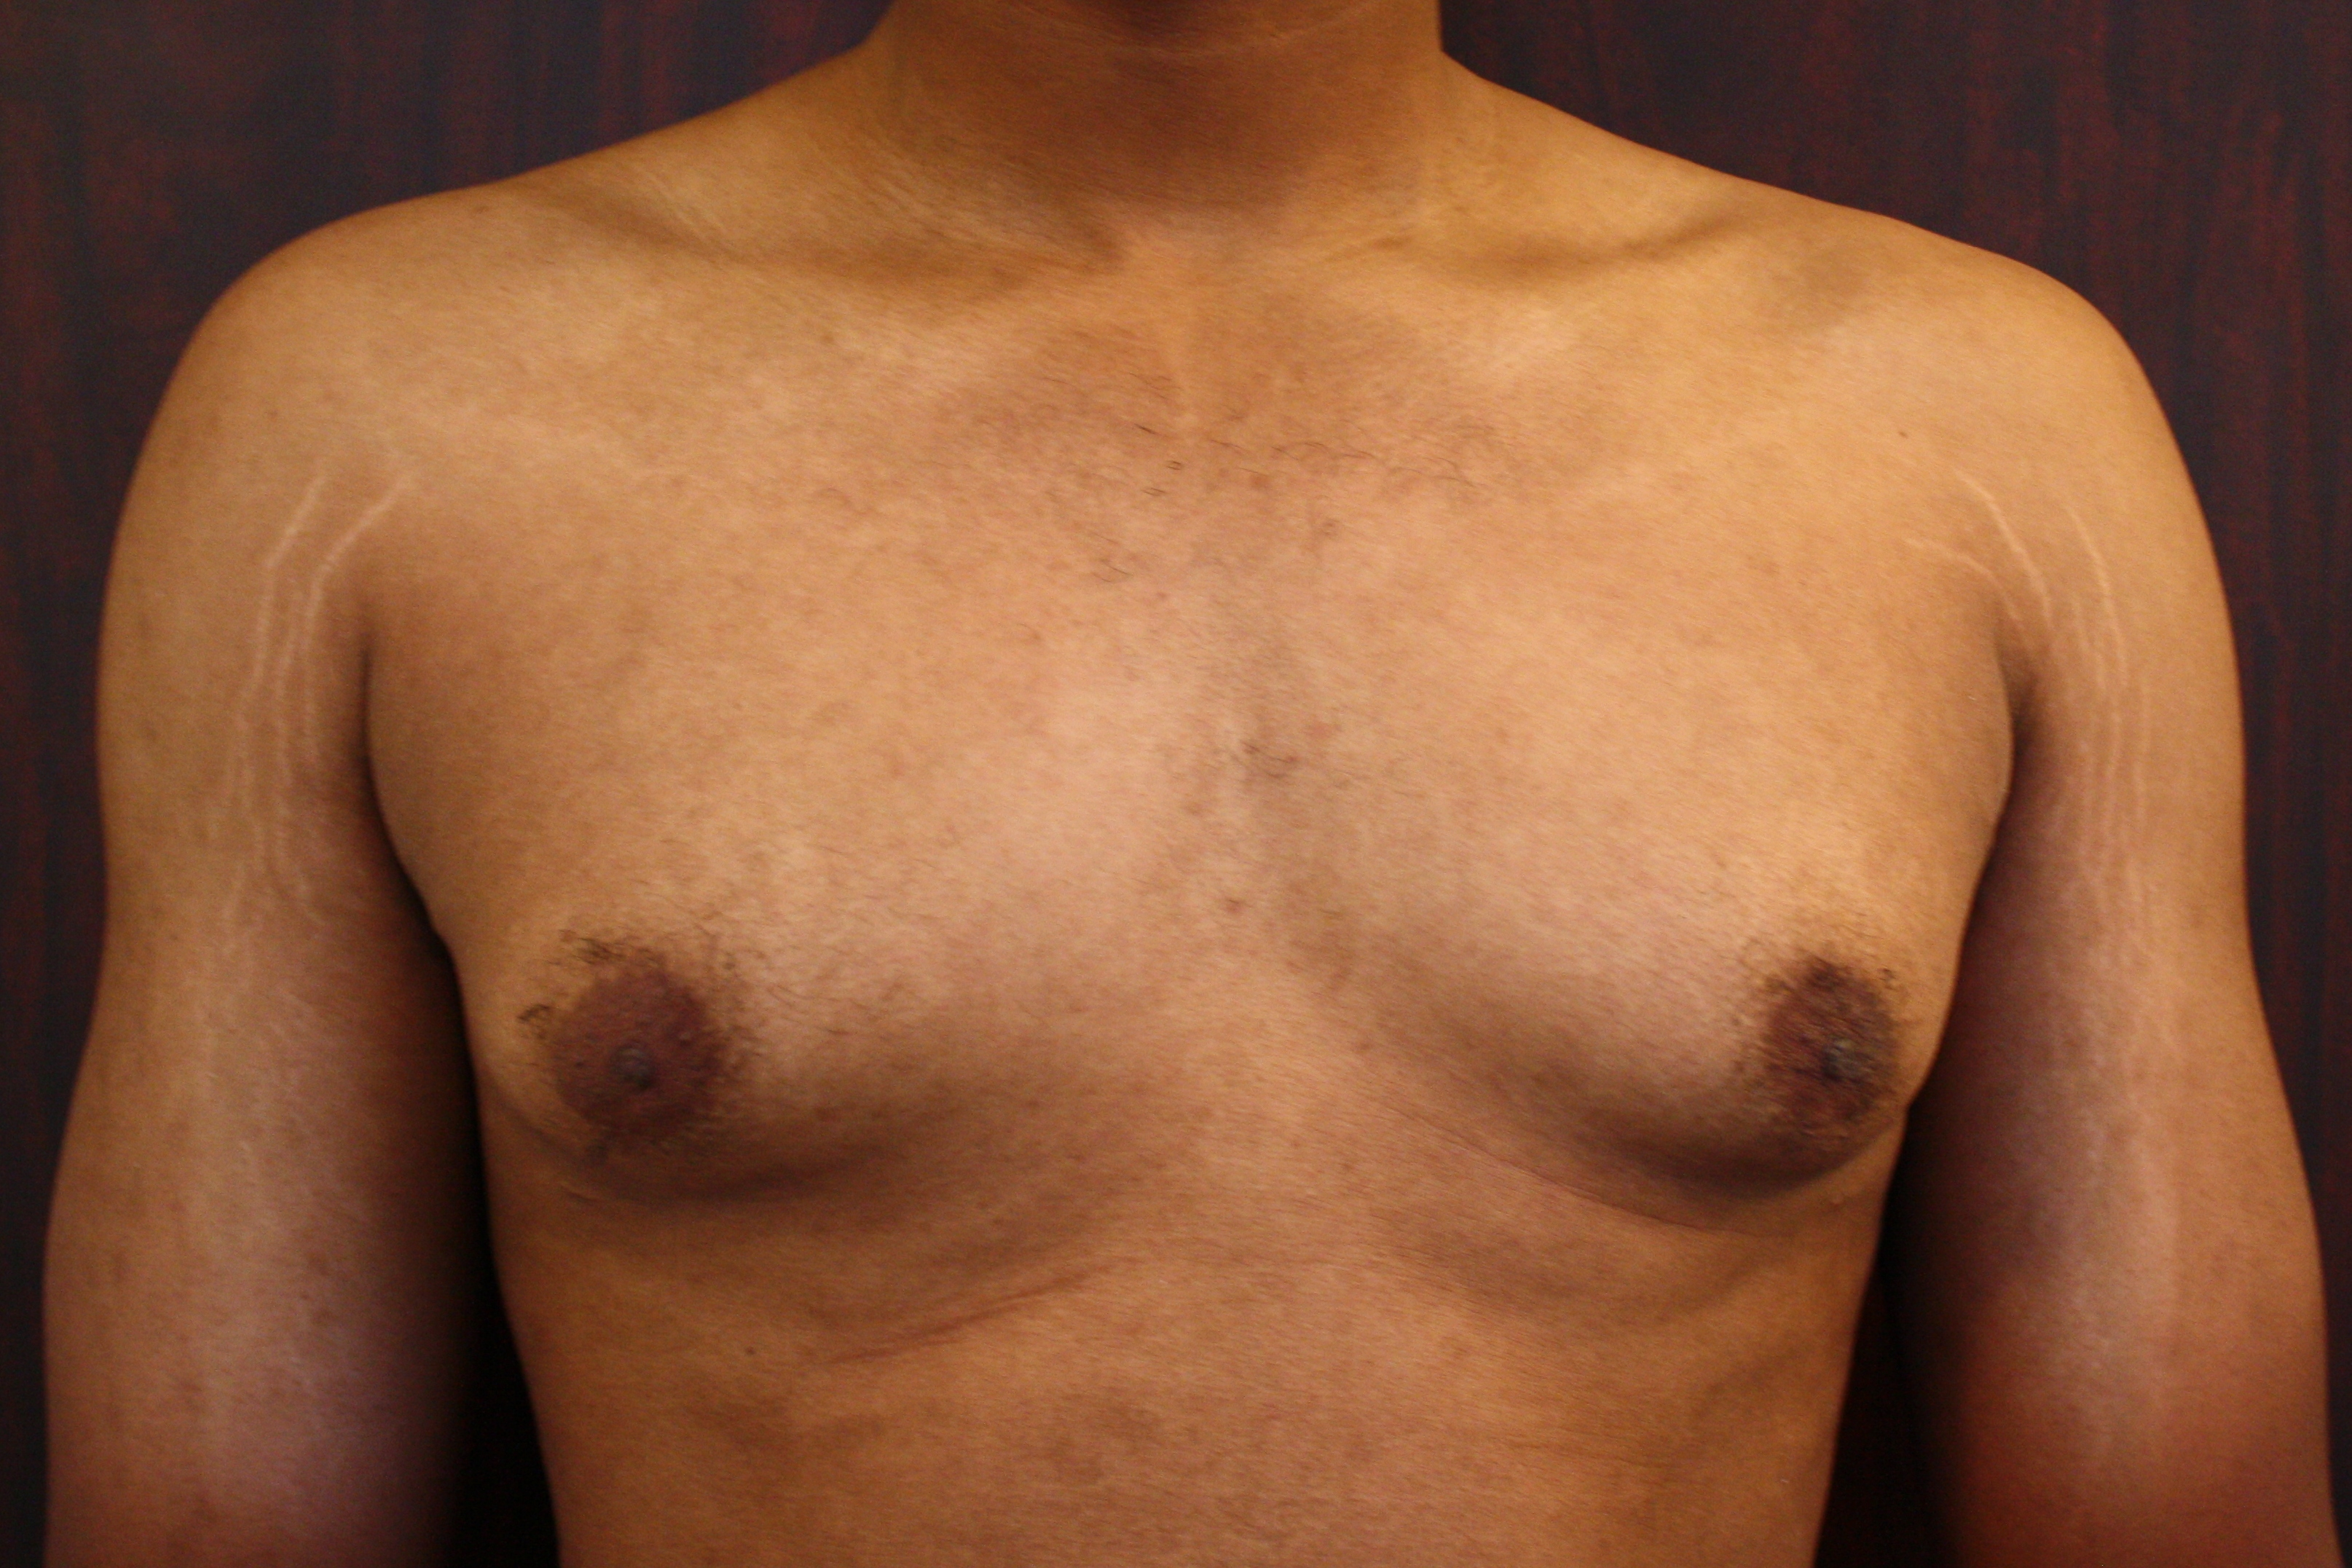 Male Breast Reduction before image